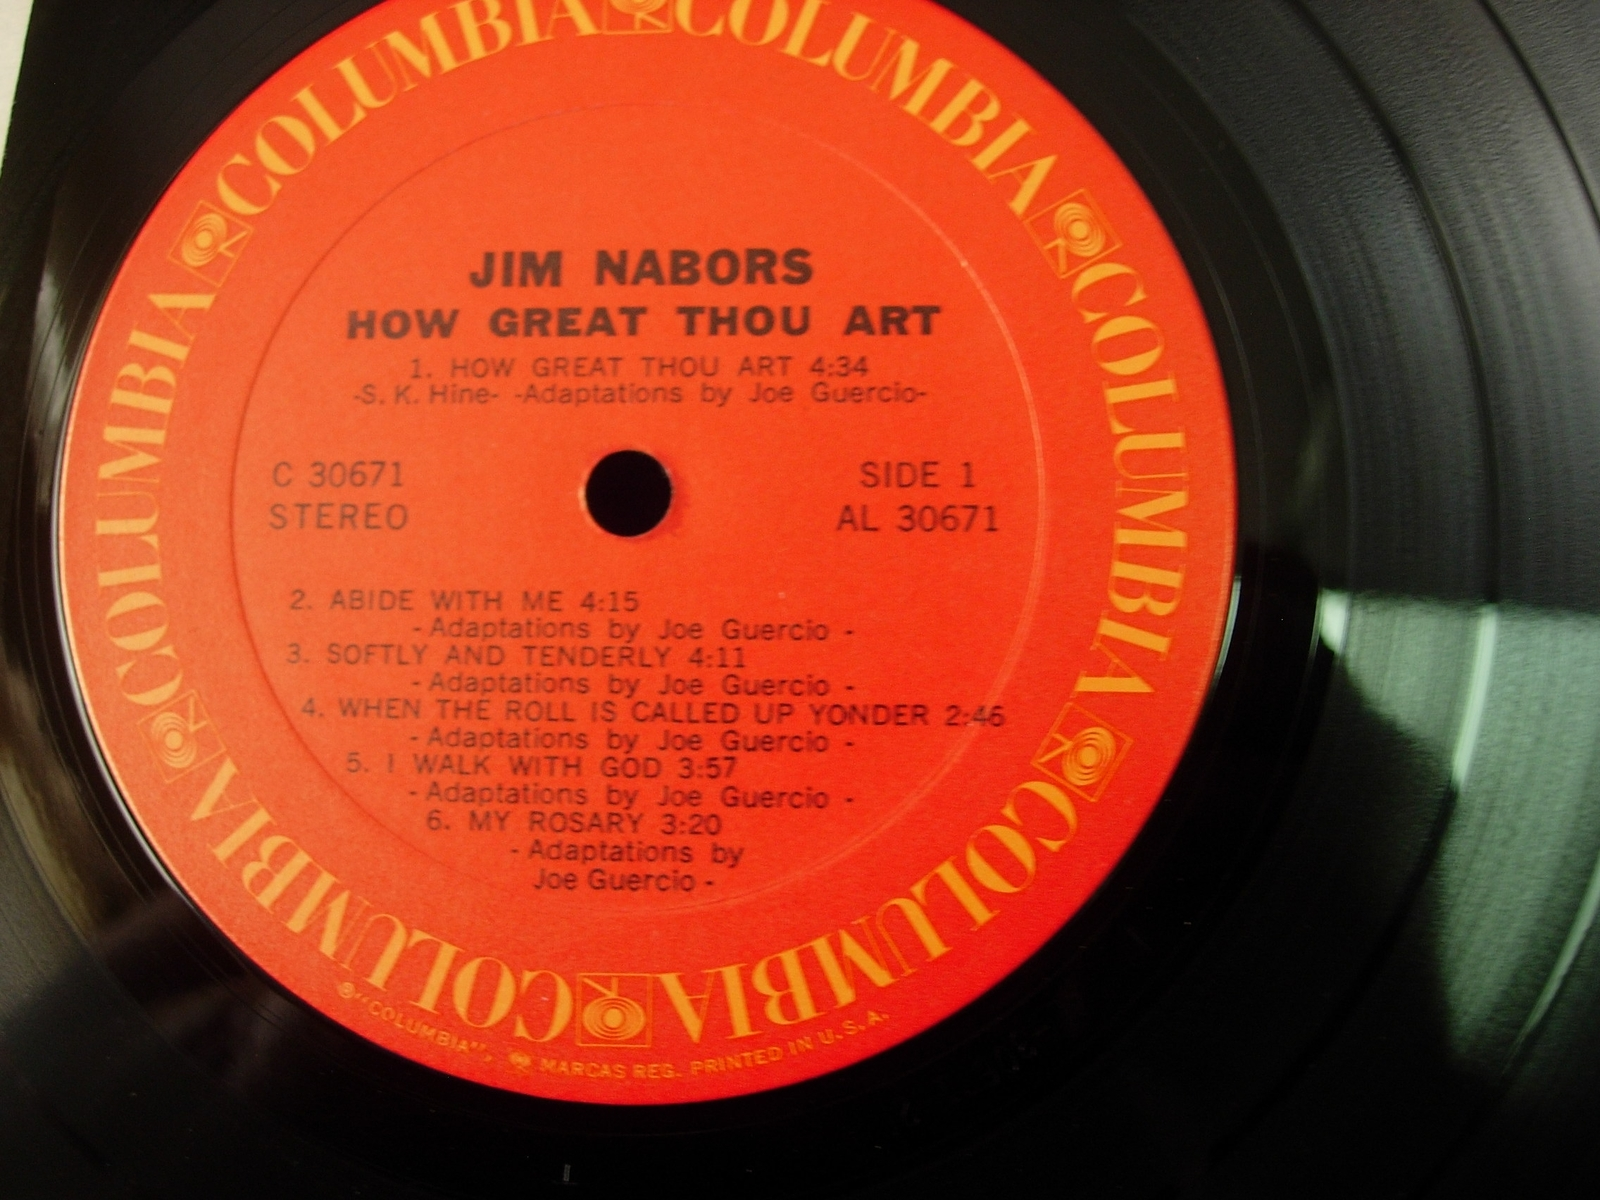 Jim Nabors - How Great Thou Art - Columbia Records C 30671